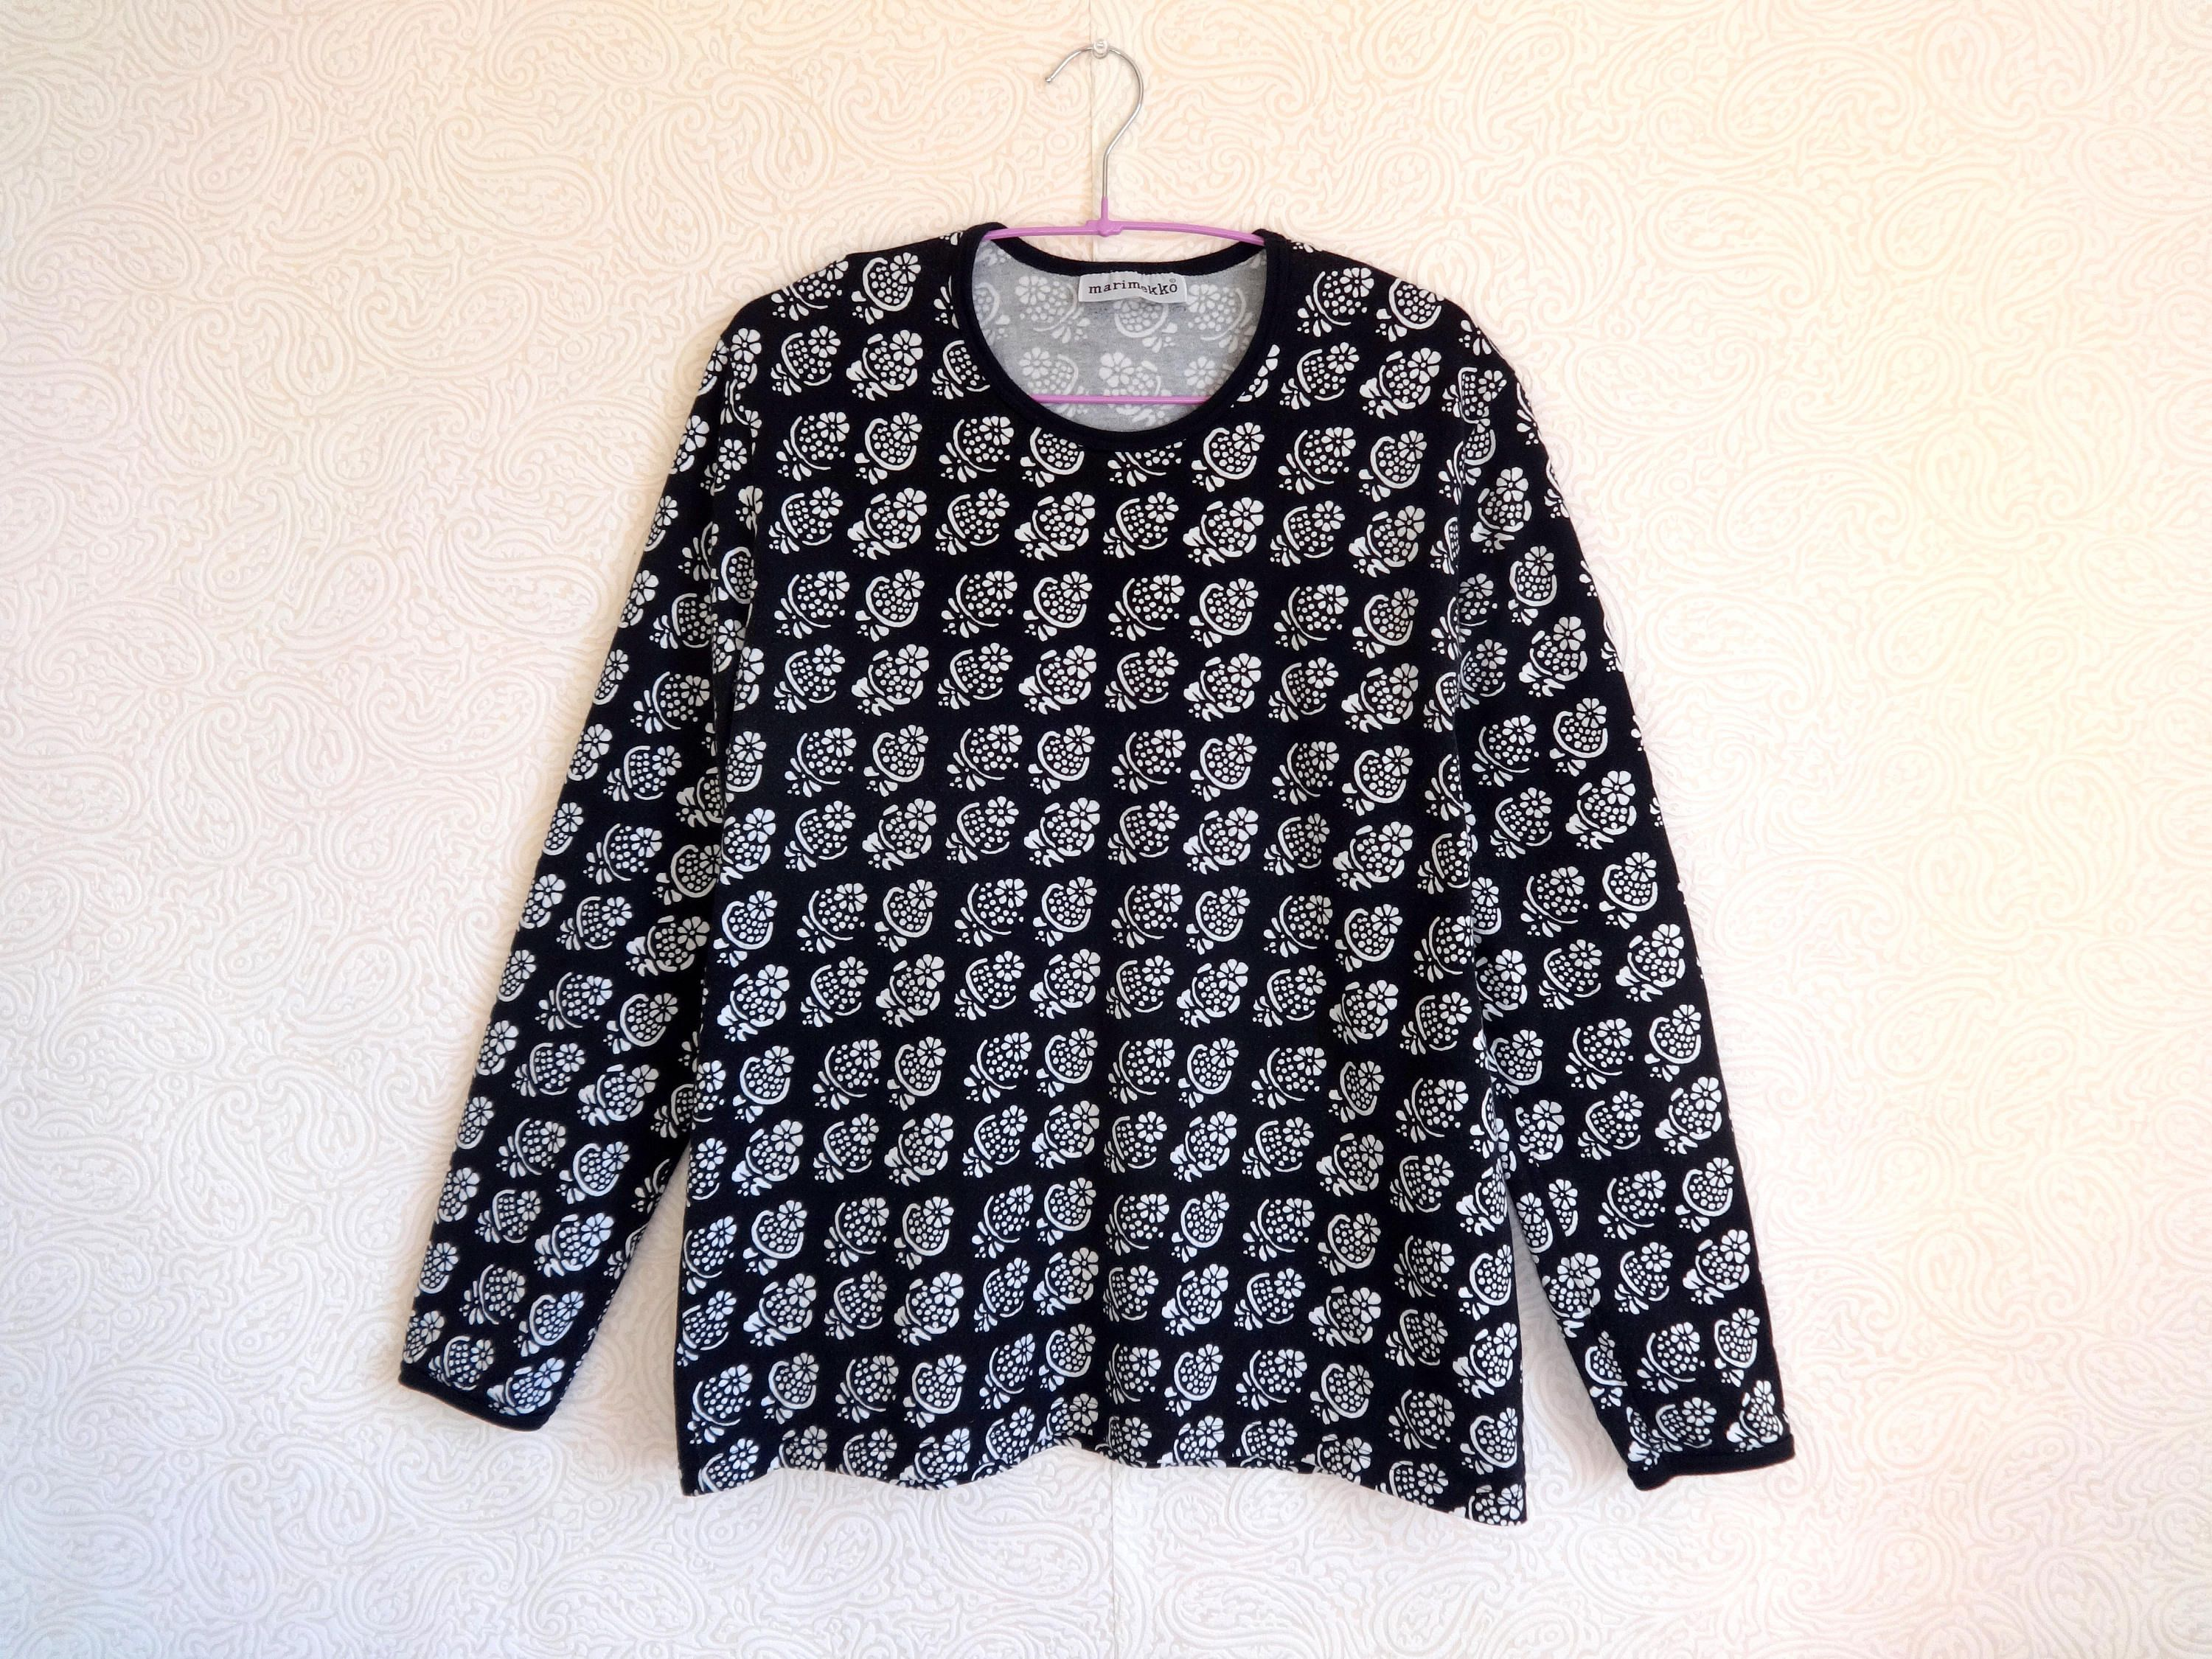 698ae376 MARIMEKKO Black & White Cotton Jersey Shirt Floral Shirt Women's XL  Marimekko Top Long Sleeve Printed Flowers Marimekko Clothing by  Vintageby2sisters on ...